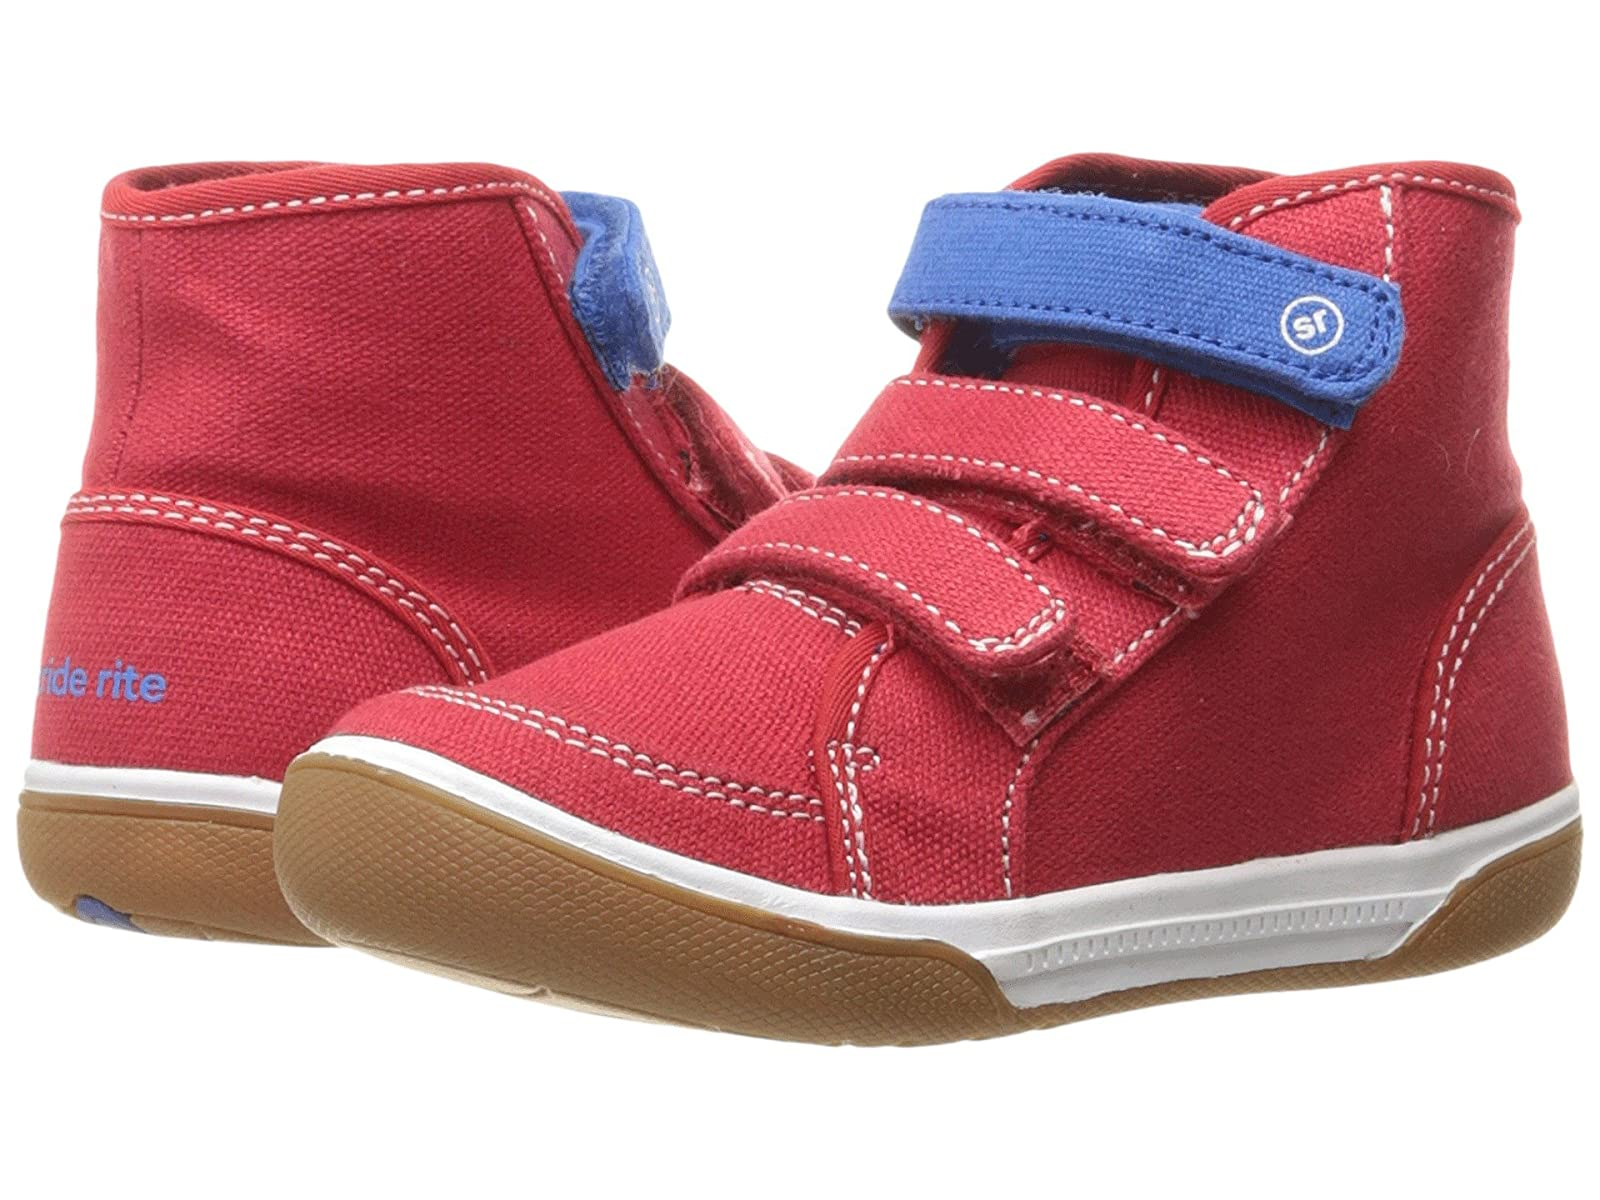 Stride Rite Ellis (Toddler)Cheap and distinctive eye-catching shoes